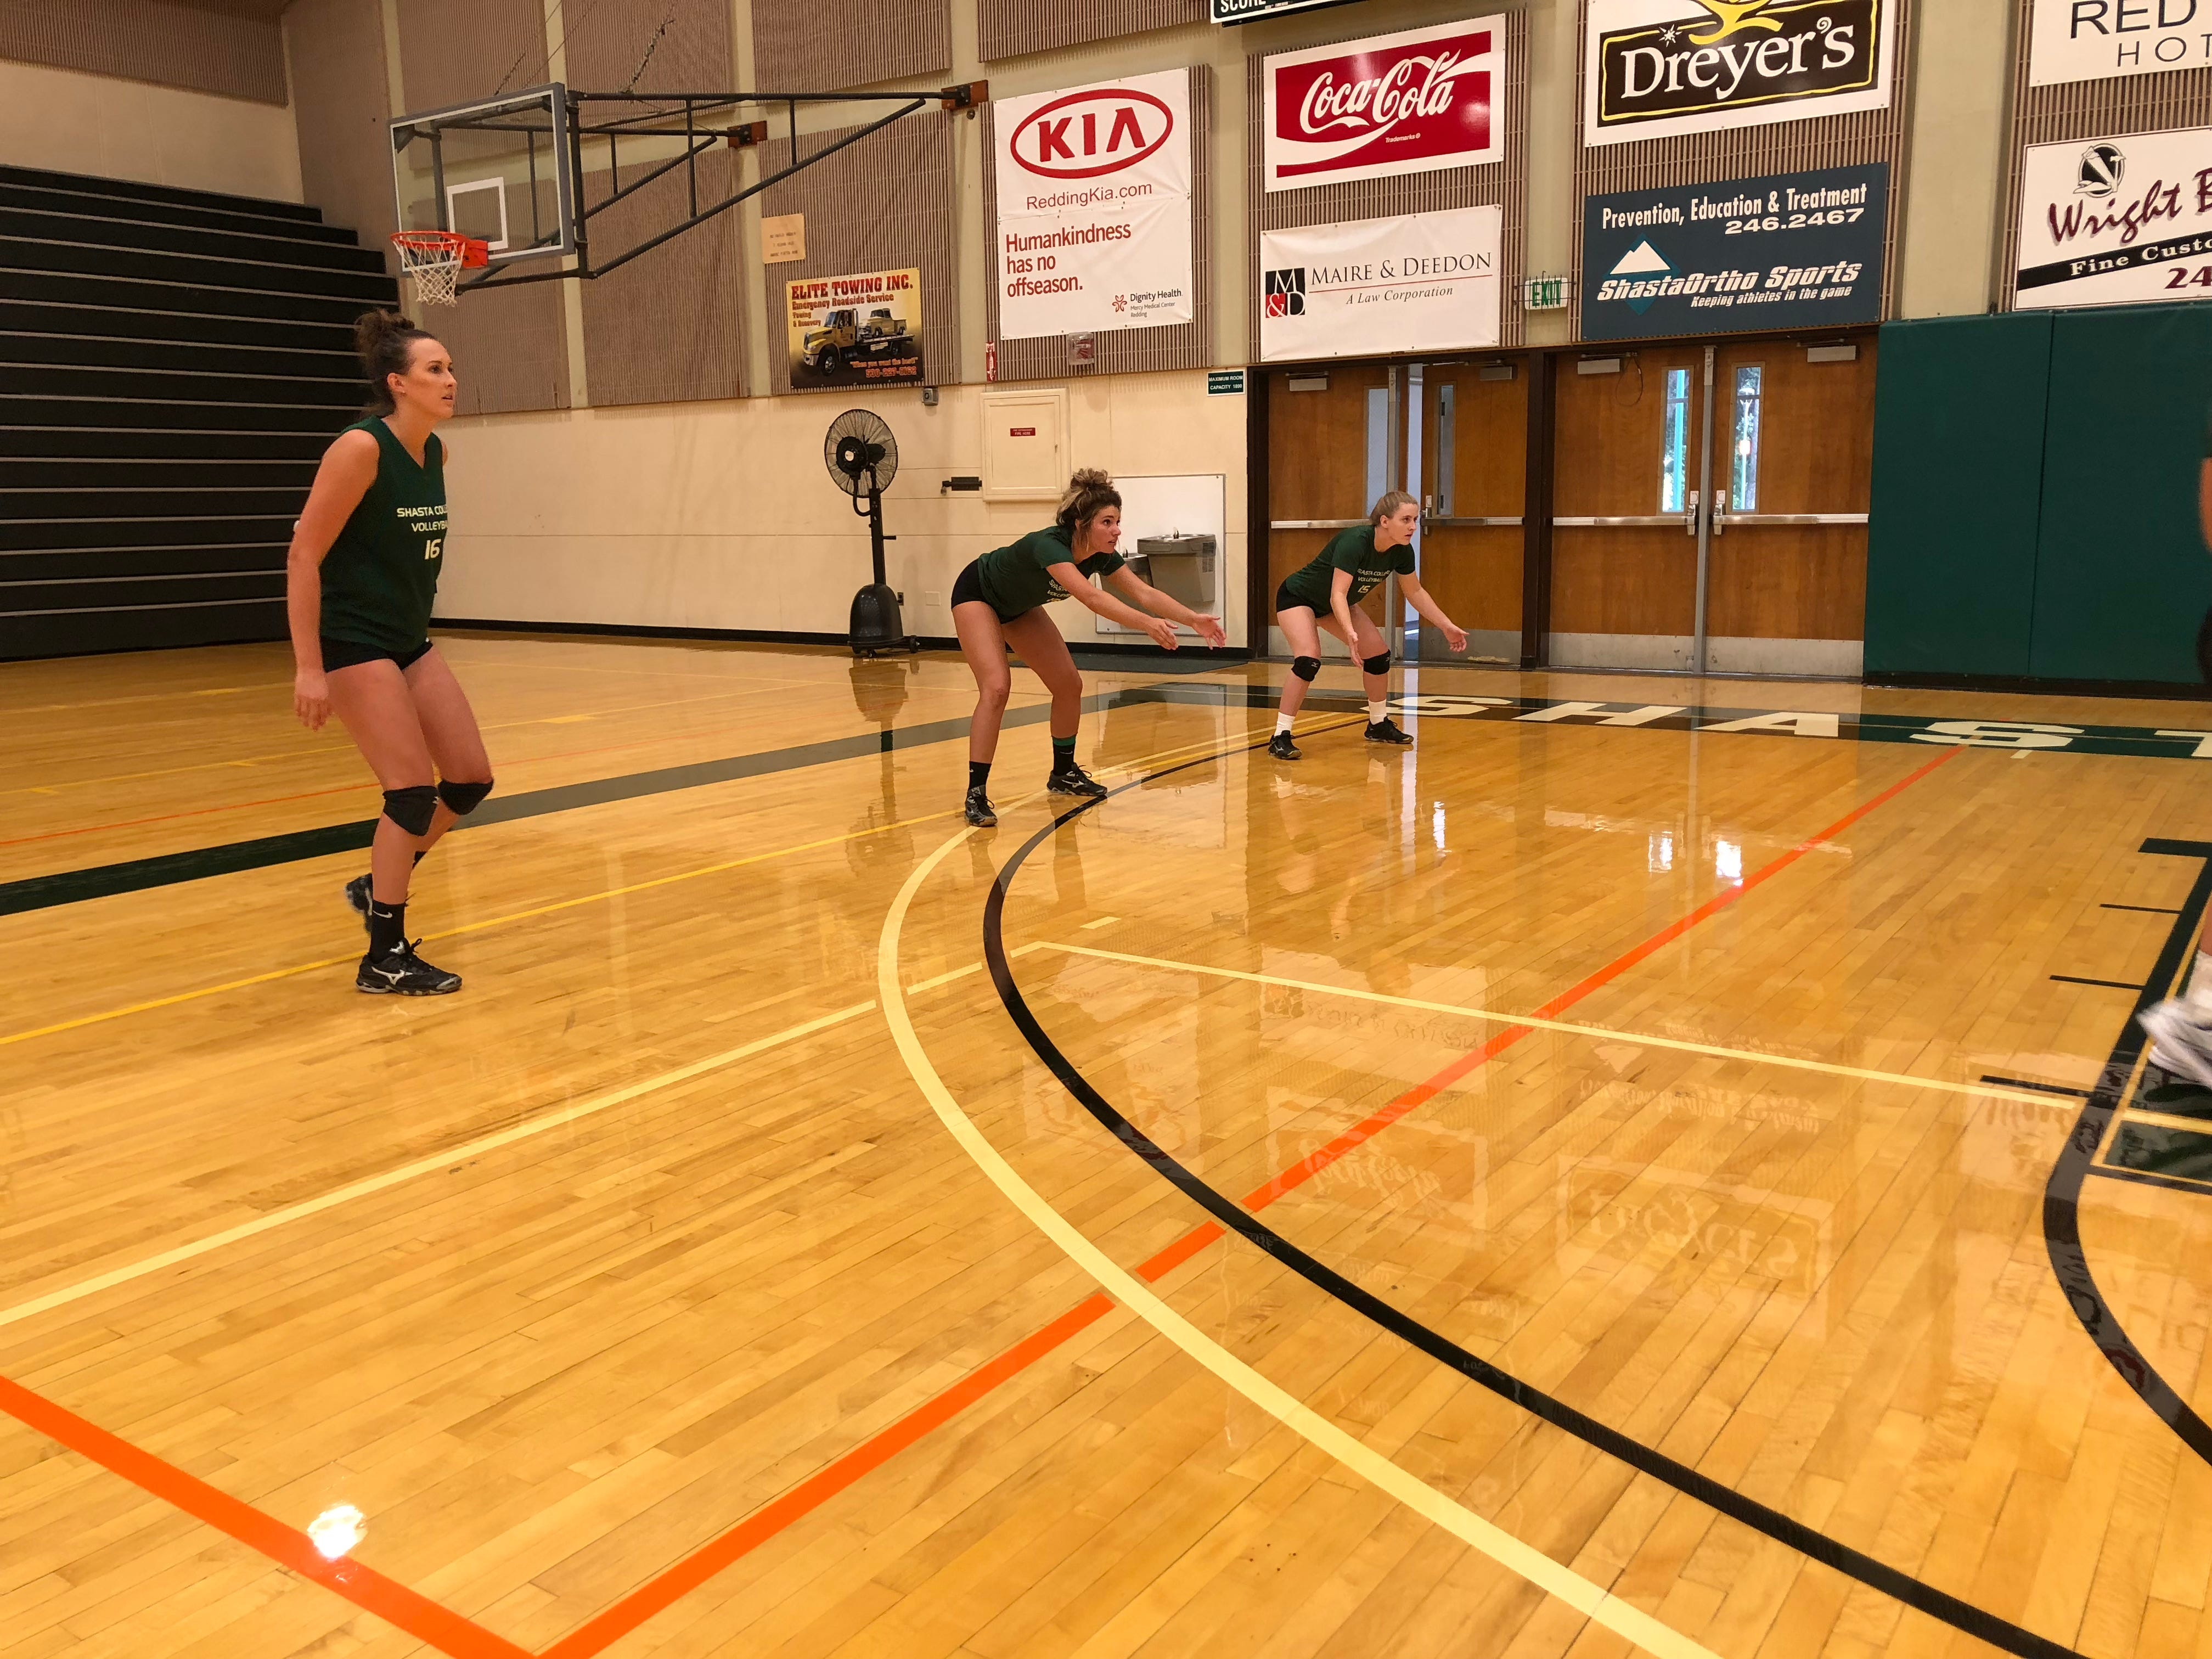 The Shasta College Knights volleyball team practices on Tuesday afternoon. The team's first regular season game is Friday when the Knights face Hartnell College at Santa Rosa Junior College.